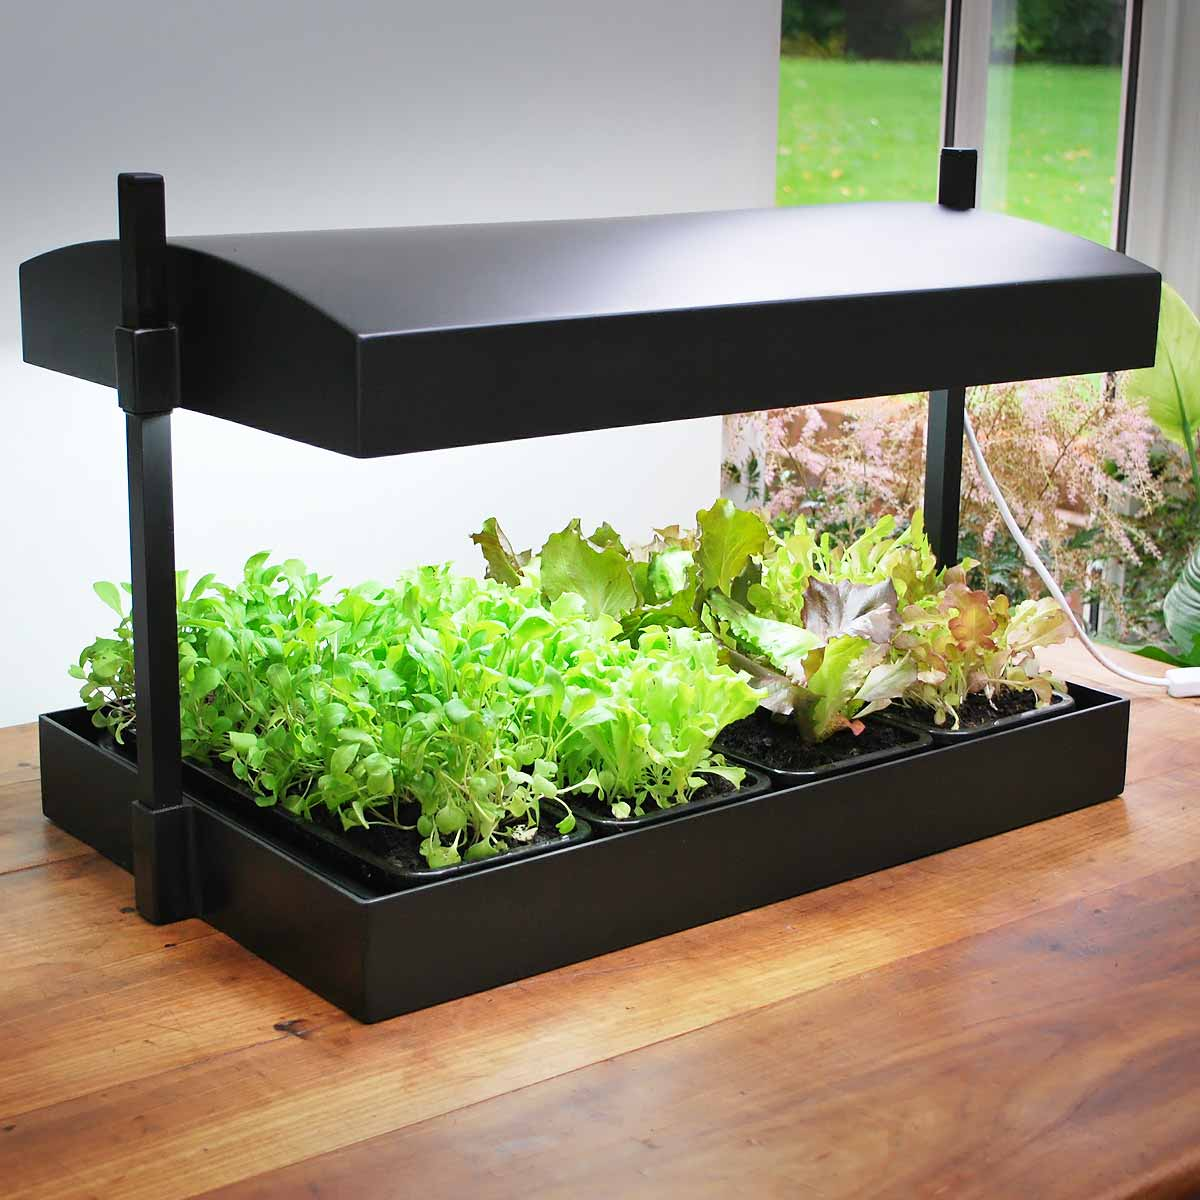 potager d 39 int rieur lampe de croissance horticole hydroponie lampe floraison. Black Bedroom Furniture Sets. Home Design Ideas